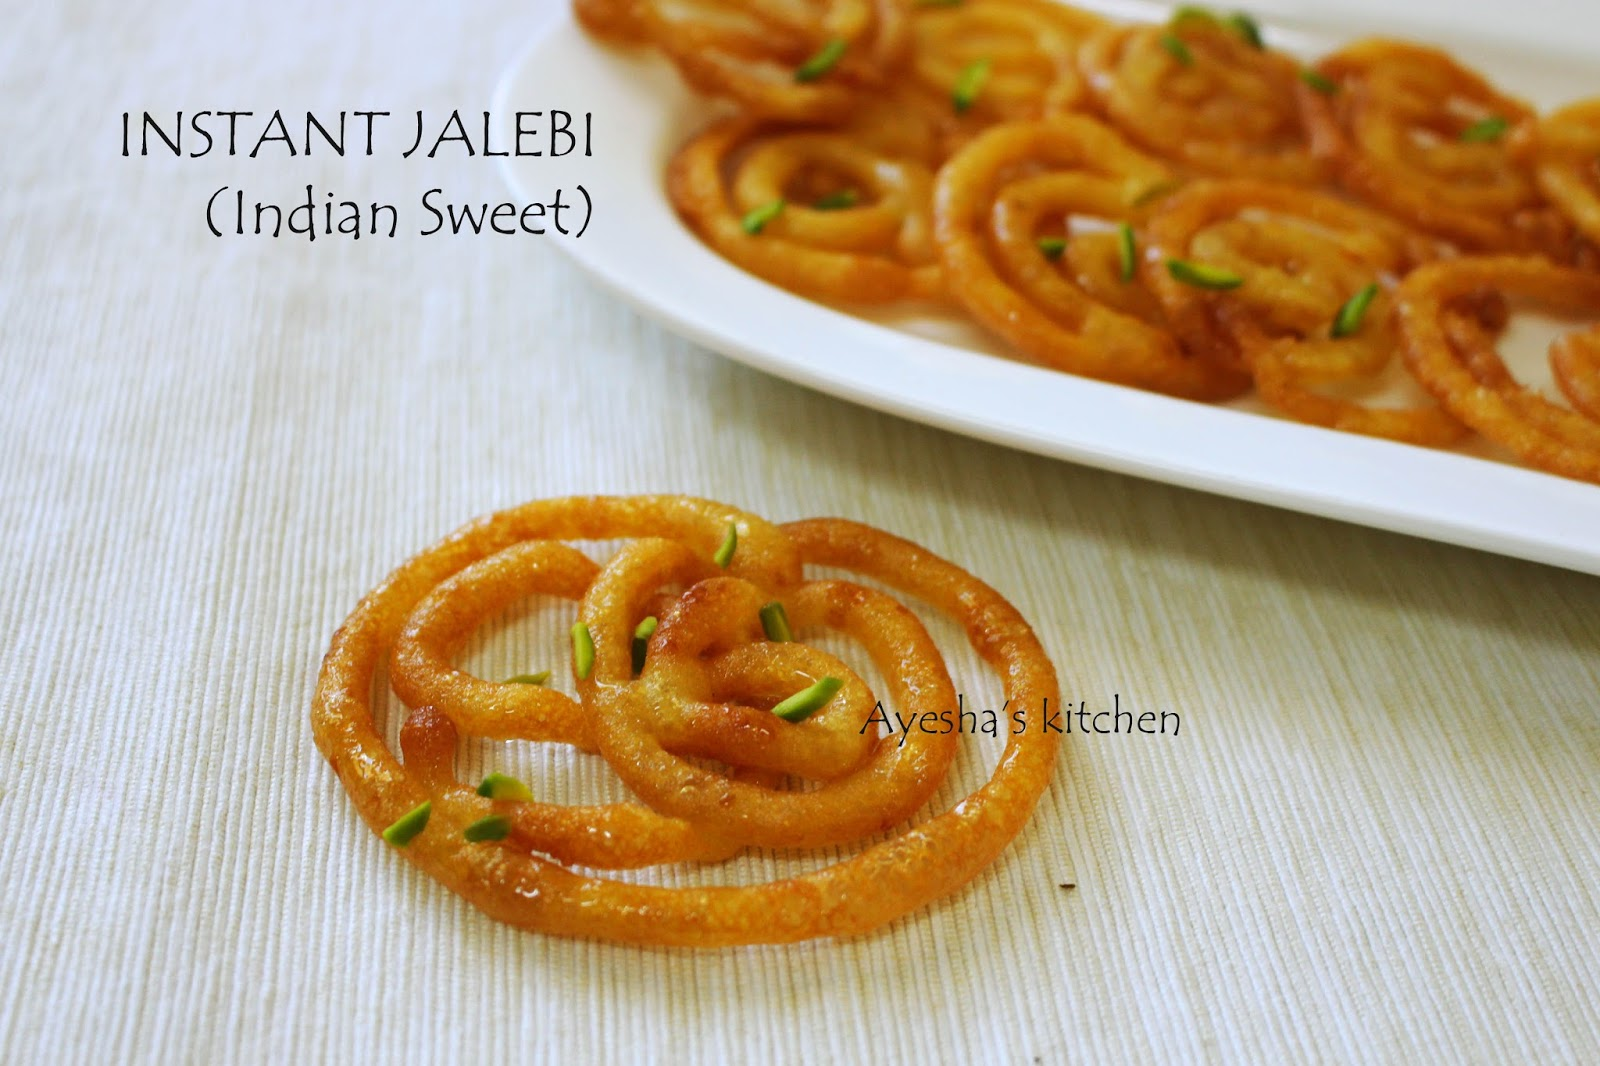 Instant jalebi recipe how to make crispy crunchy jalebi in 15 minutes so lets see how to make instant jalebi without any artificial color quick jalebi jilebi recipes indian forumfinder Image collections